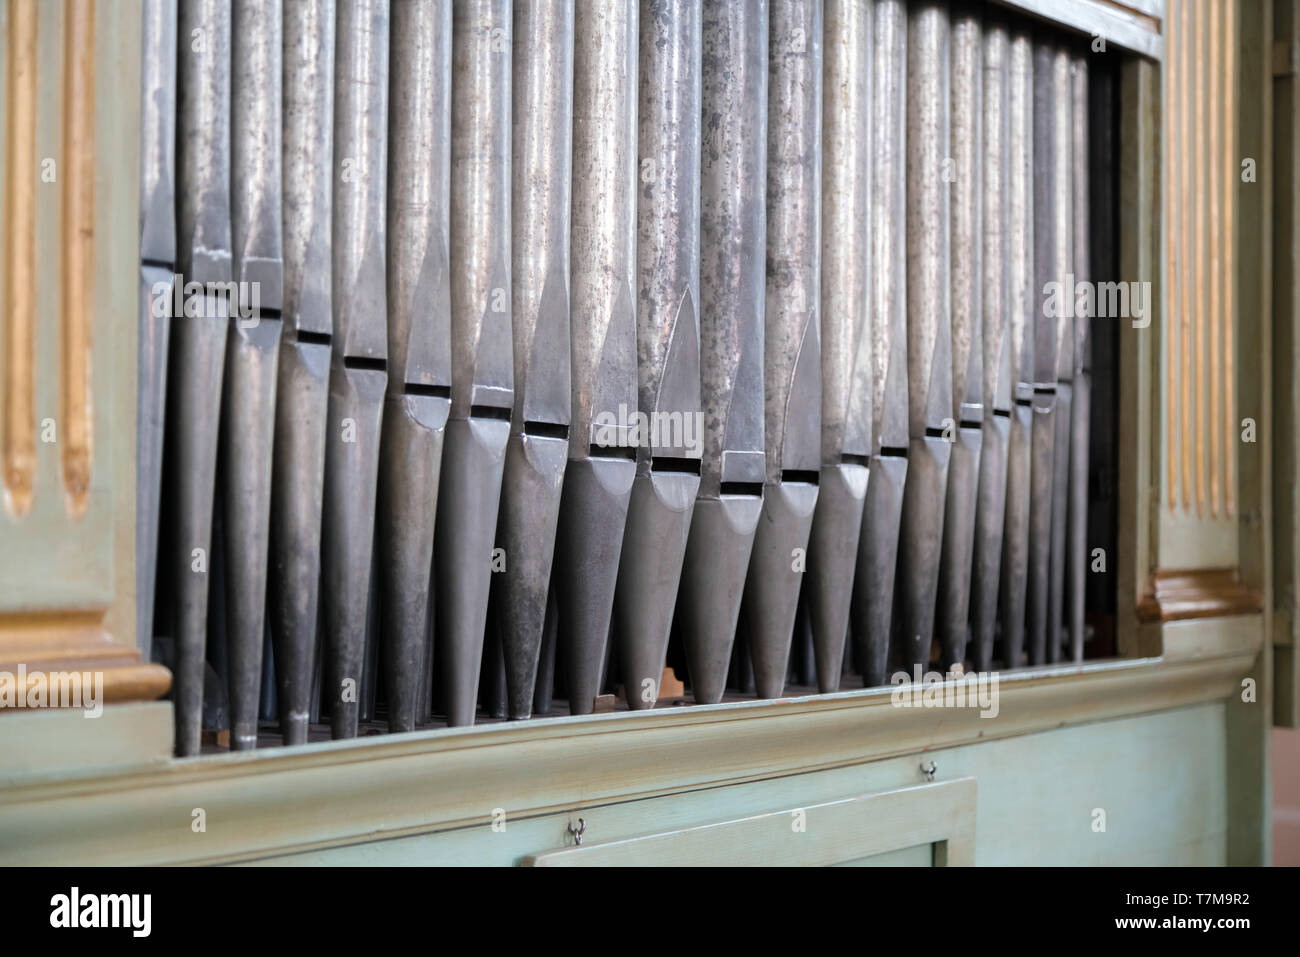 Old, silver organ pipes in a church used for playing sacred music. Many air pipes, sound tubes in the cathedral - Stock Image